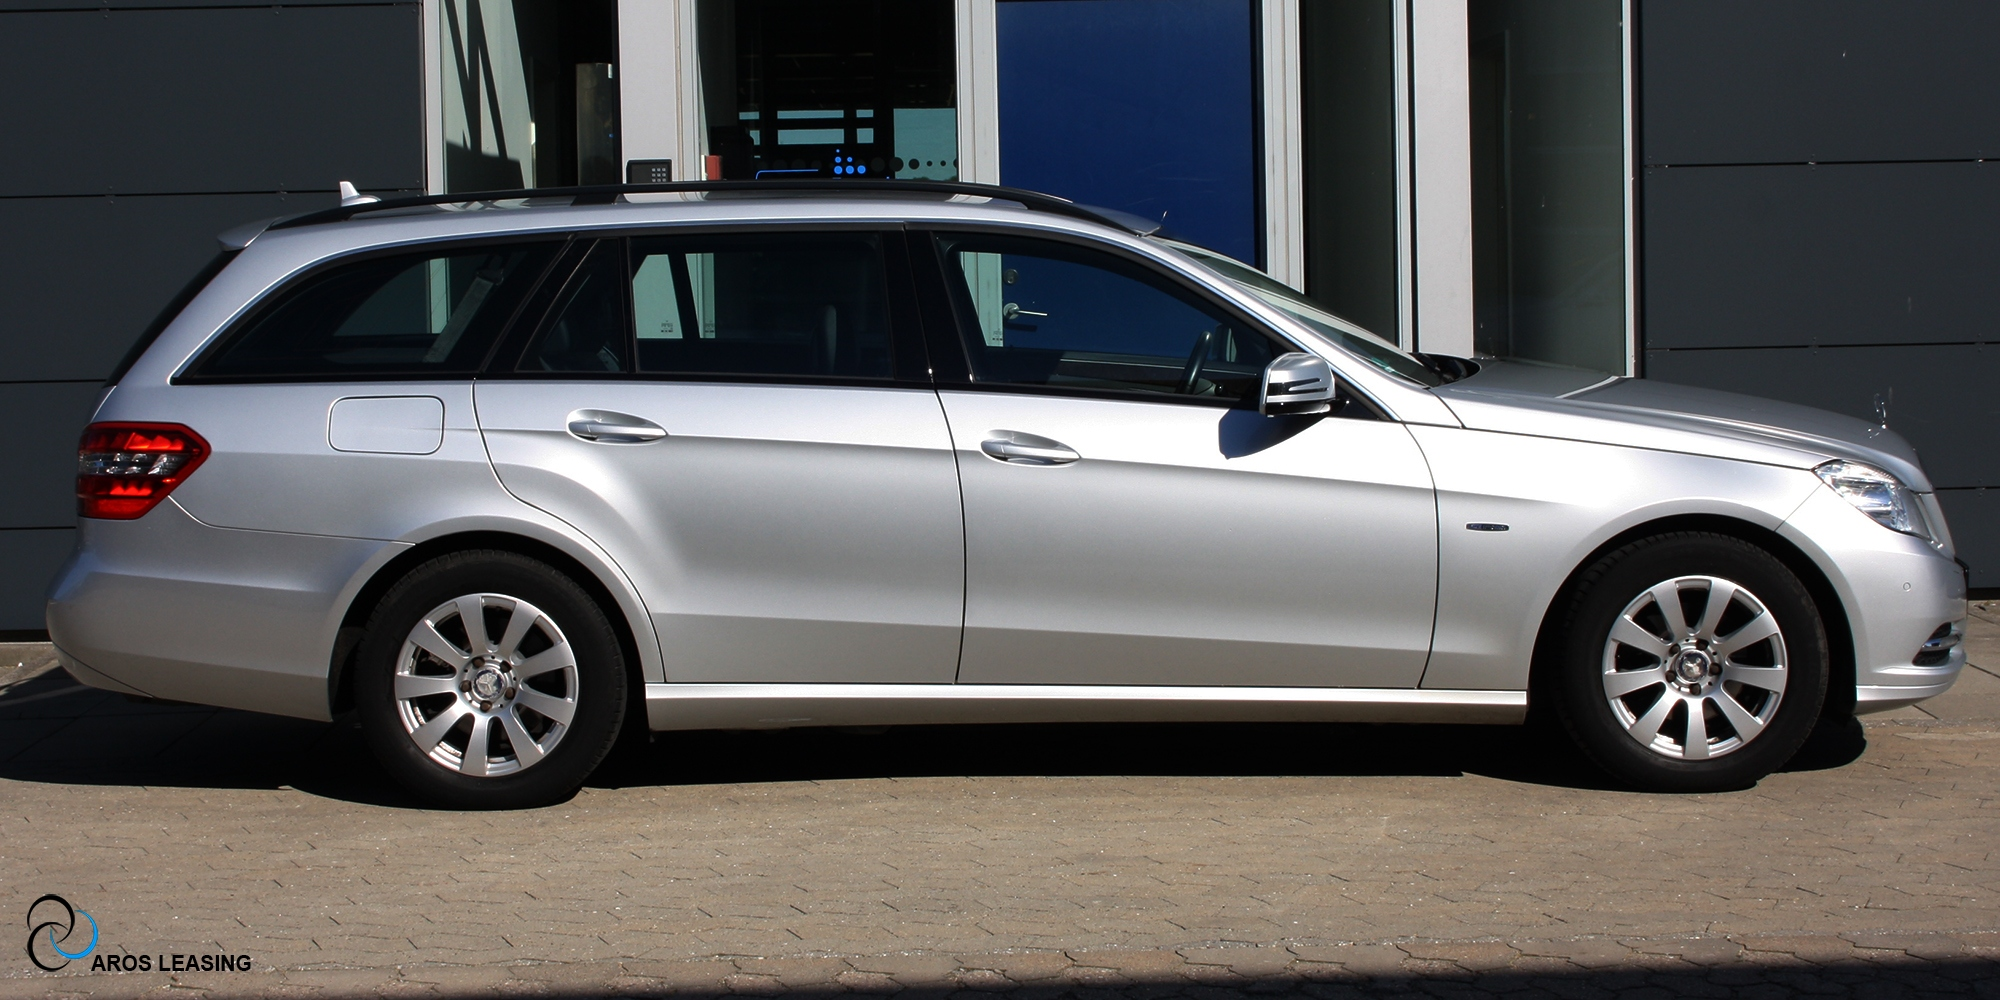 Mercedes Benz E220 Cdi Aros Leasing